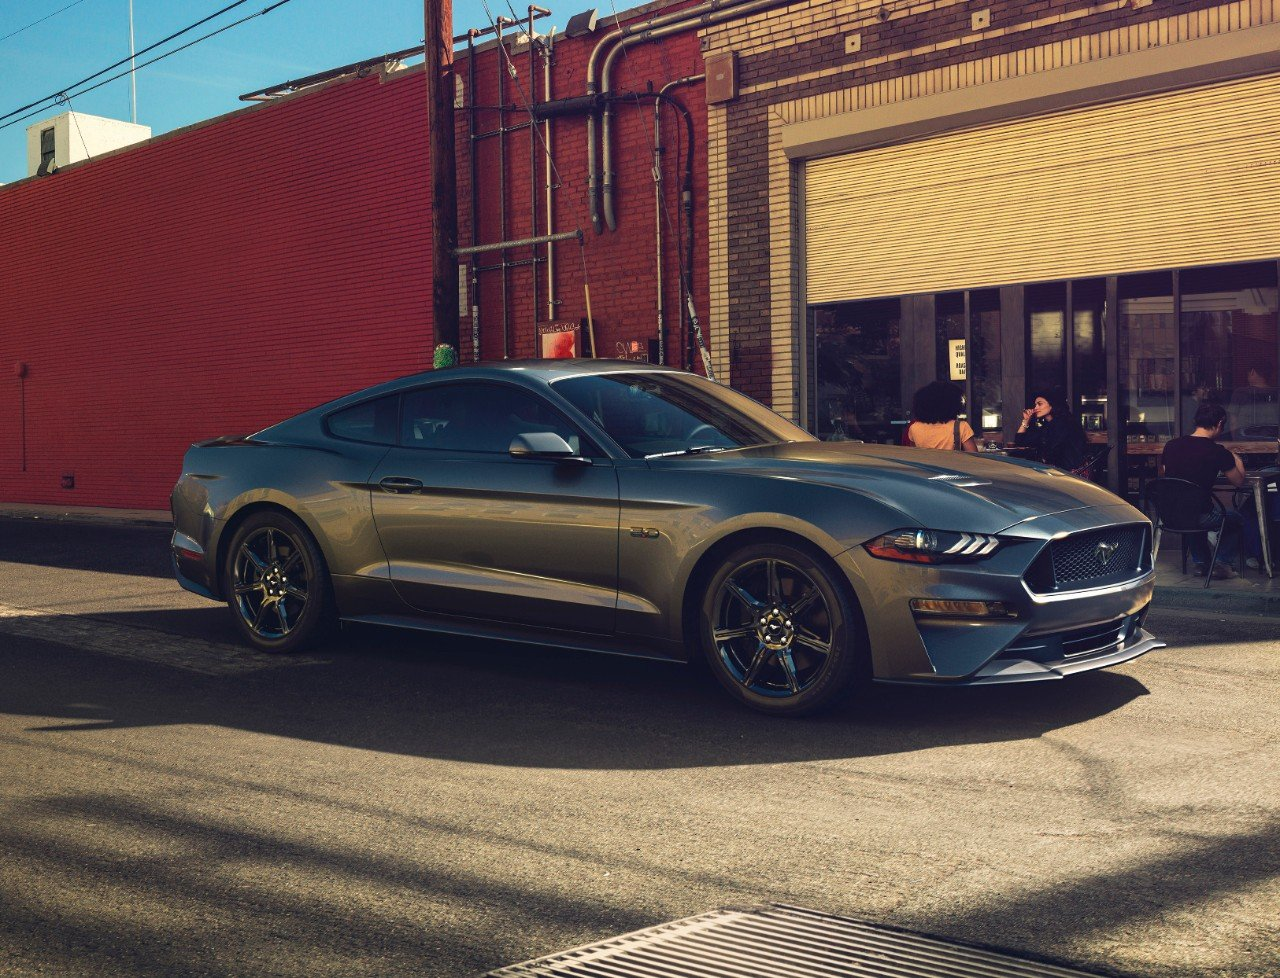 The New Ford Mustang >> The 2018 Ford Mustang Officially Debuts To Much Meh Allfordmustangs